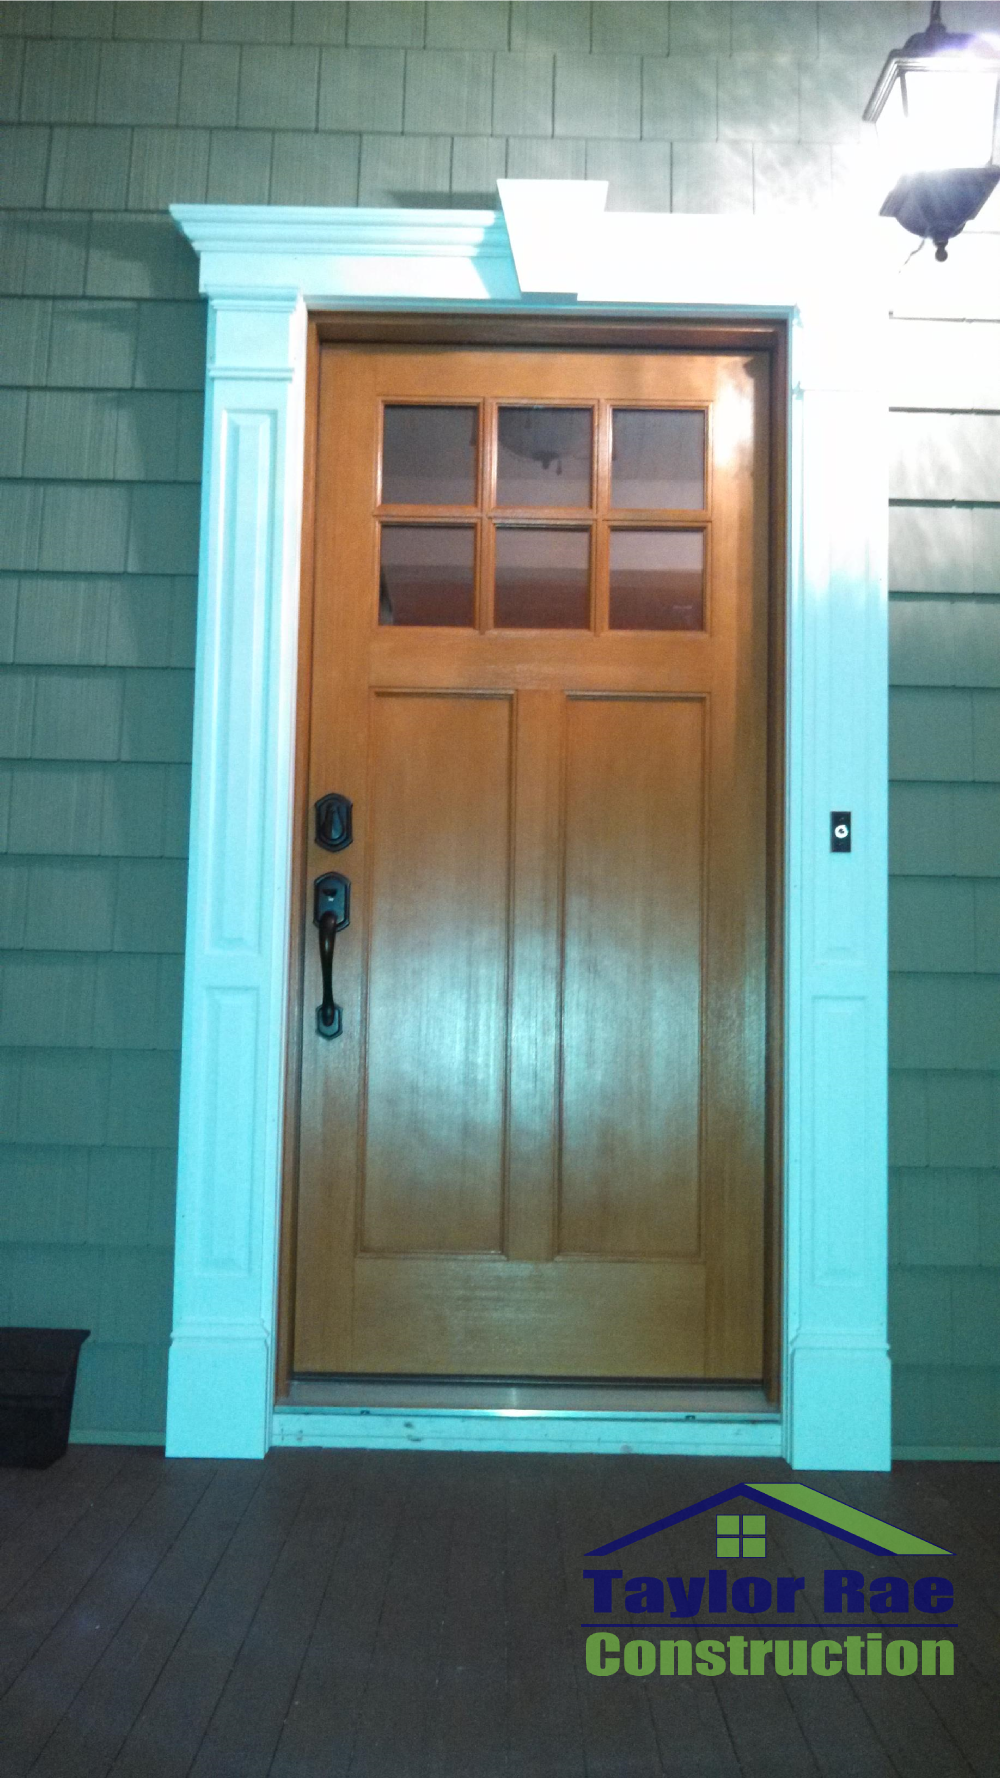 Therma Tru Classic Craft Fiberglass Entry Door With Fypon Door Surround.  Boonton NJ